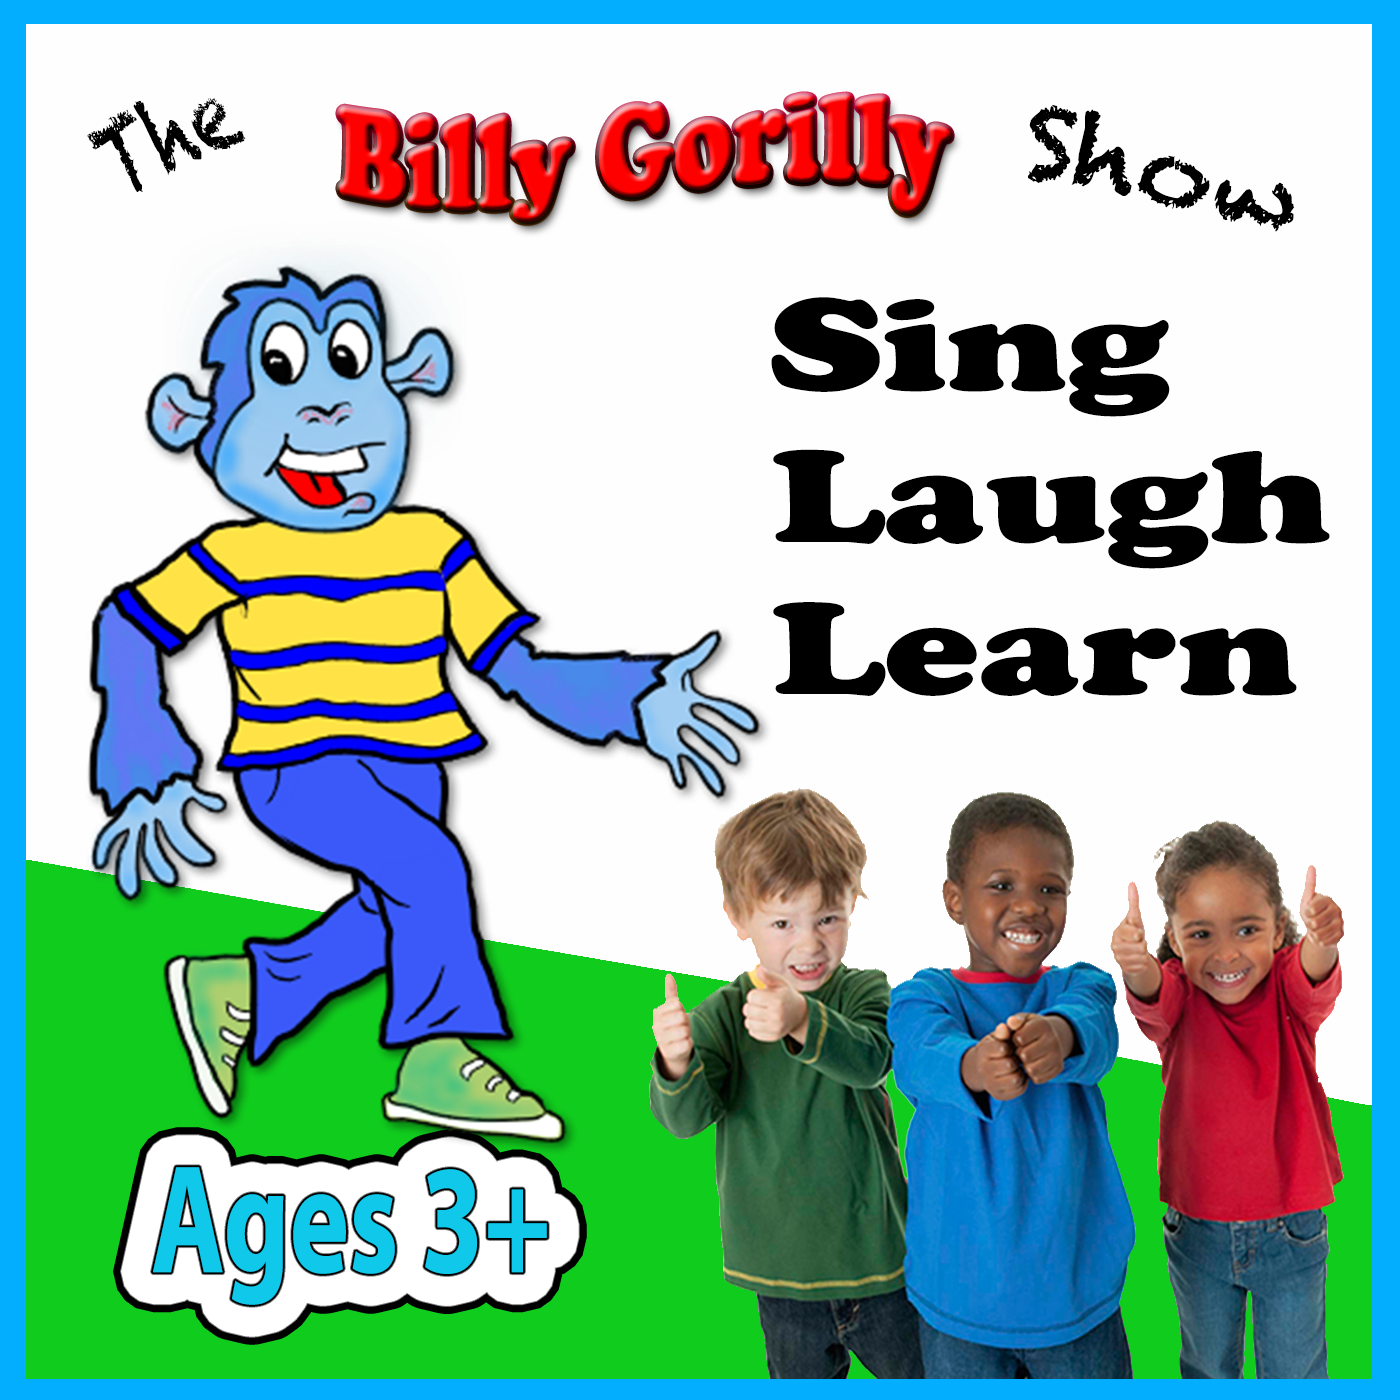 Billy Gorilly Podcast for Kids Logo